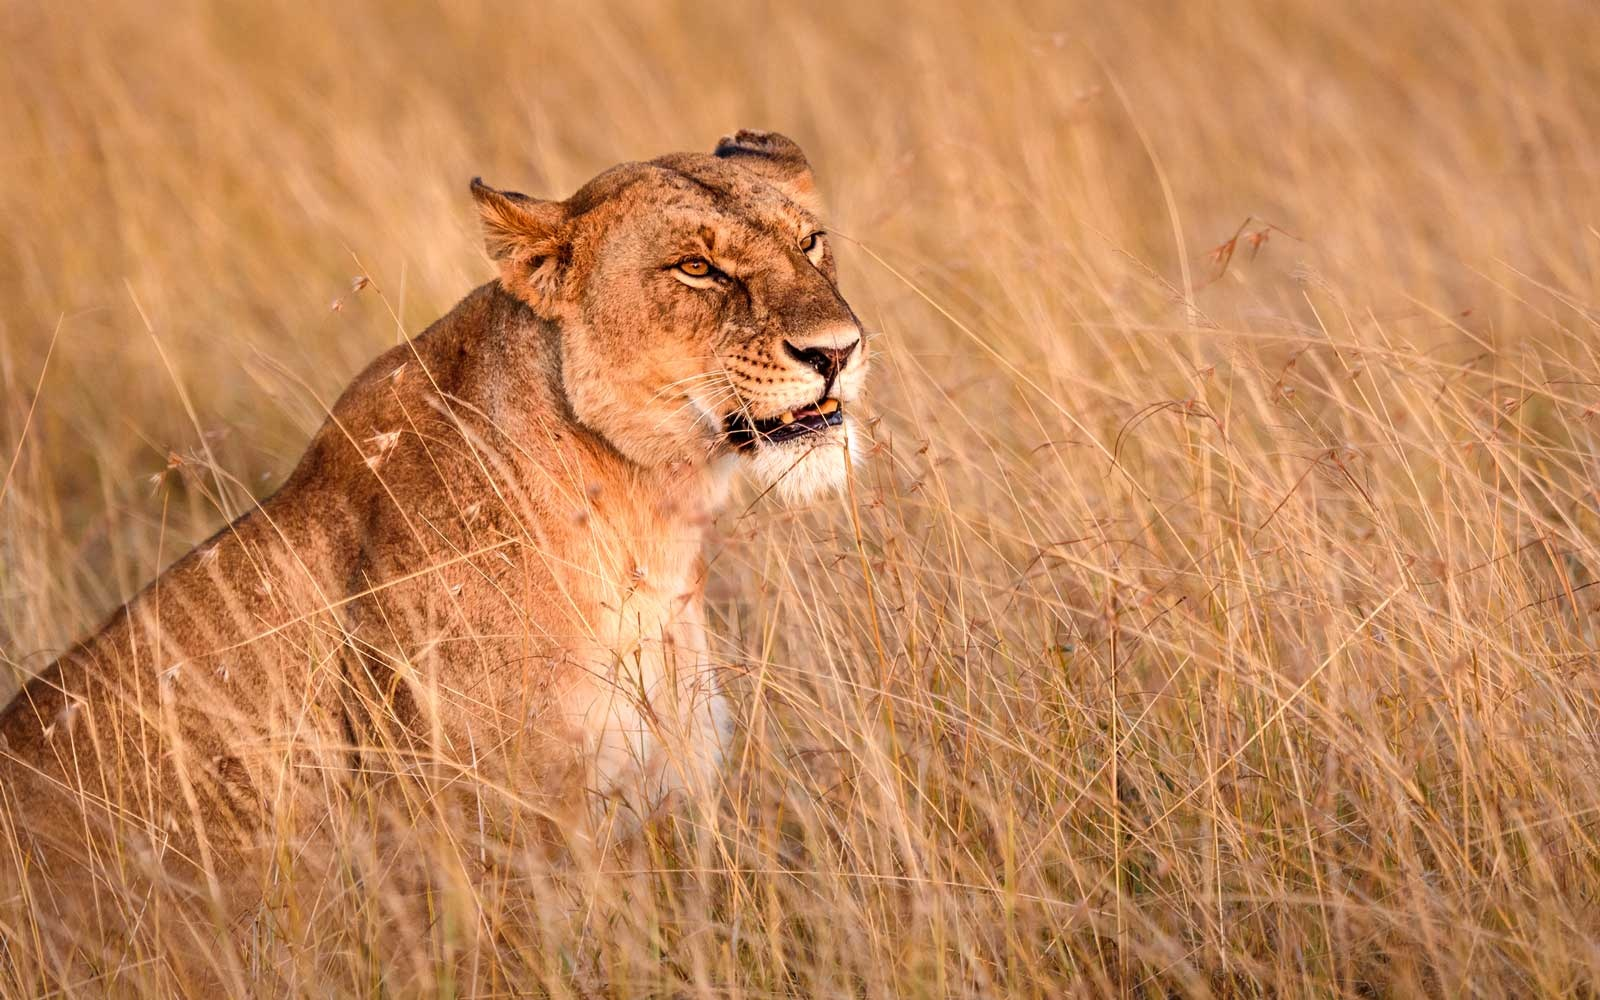 Lioness in natural landscape